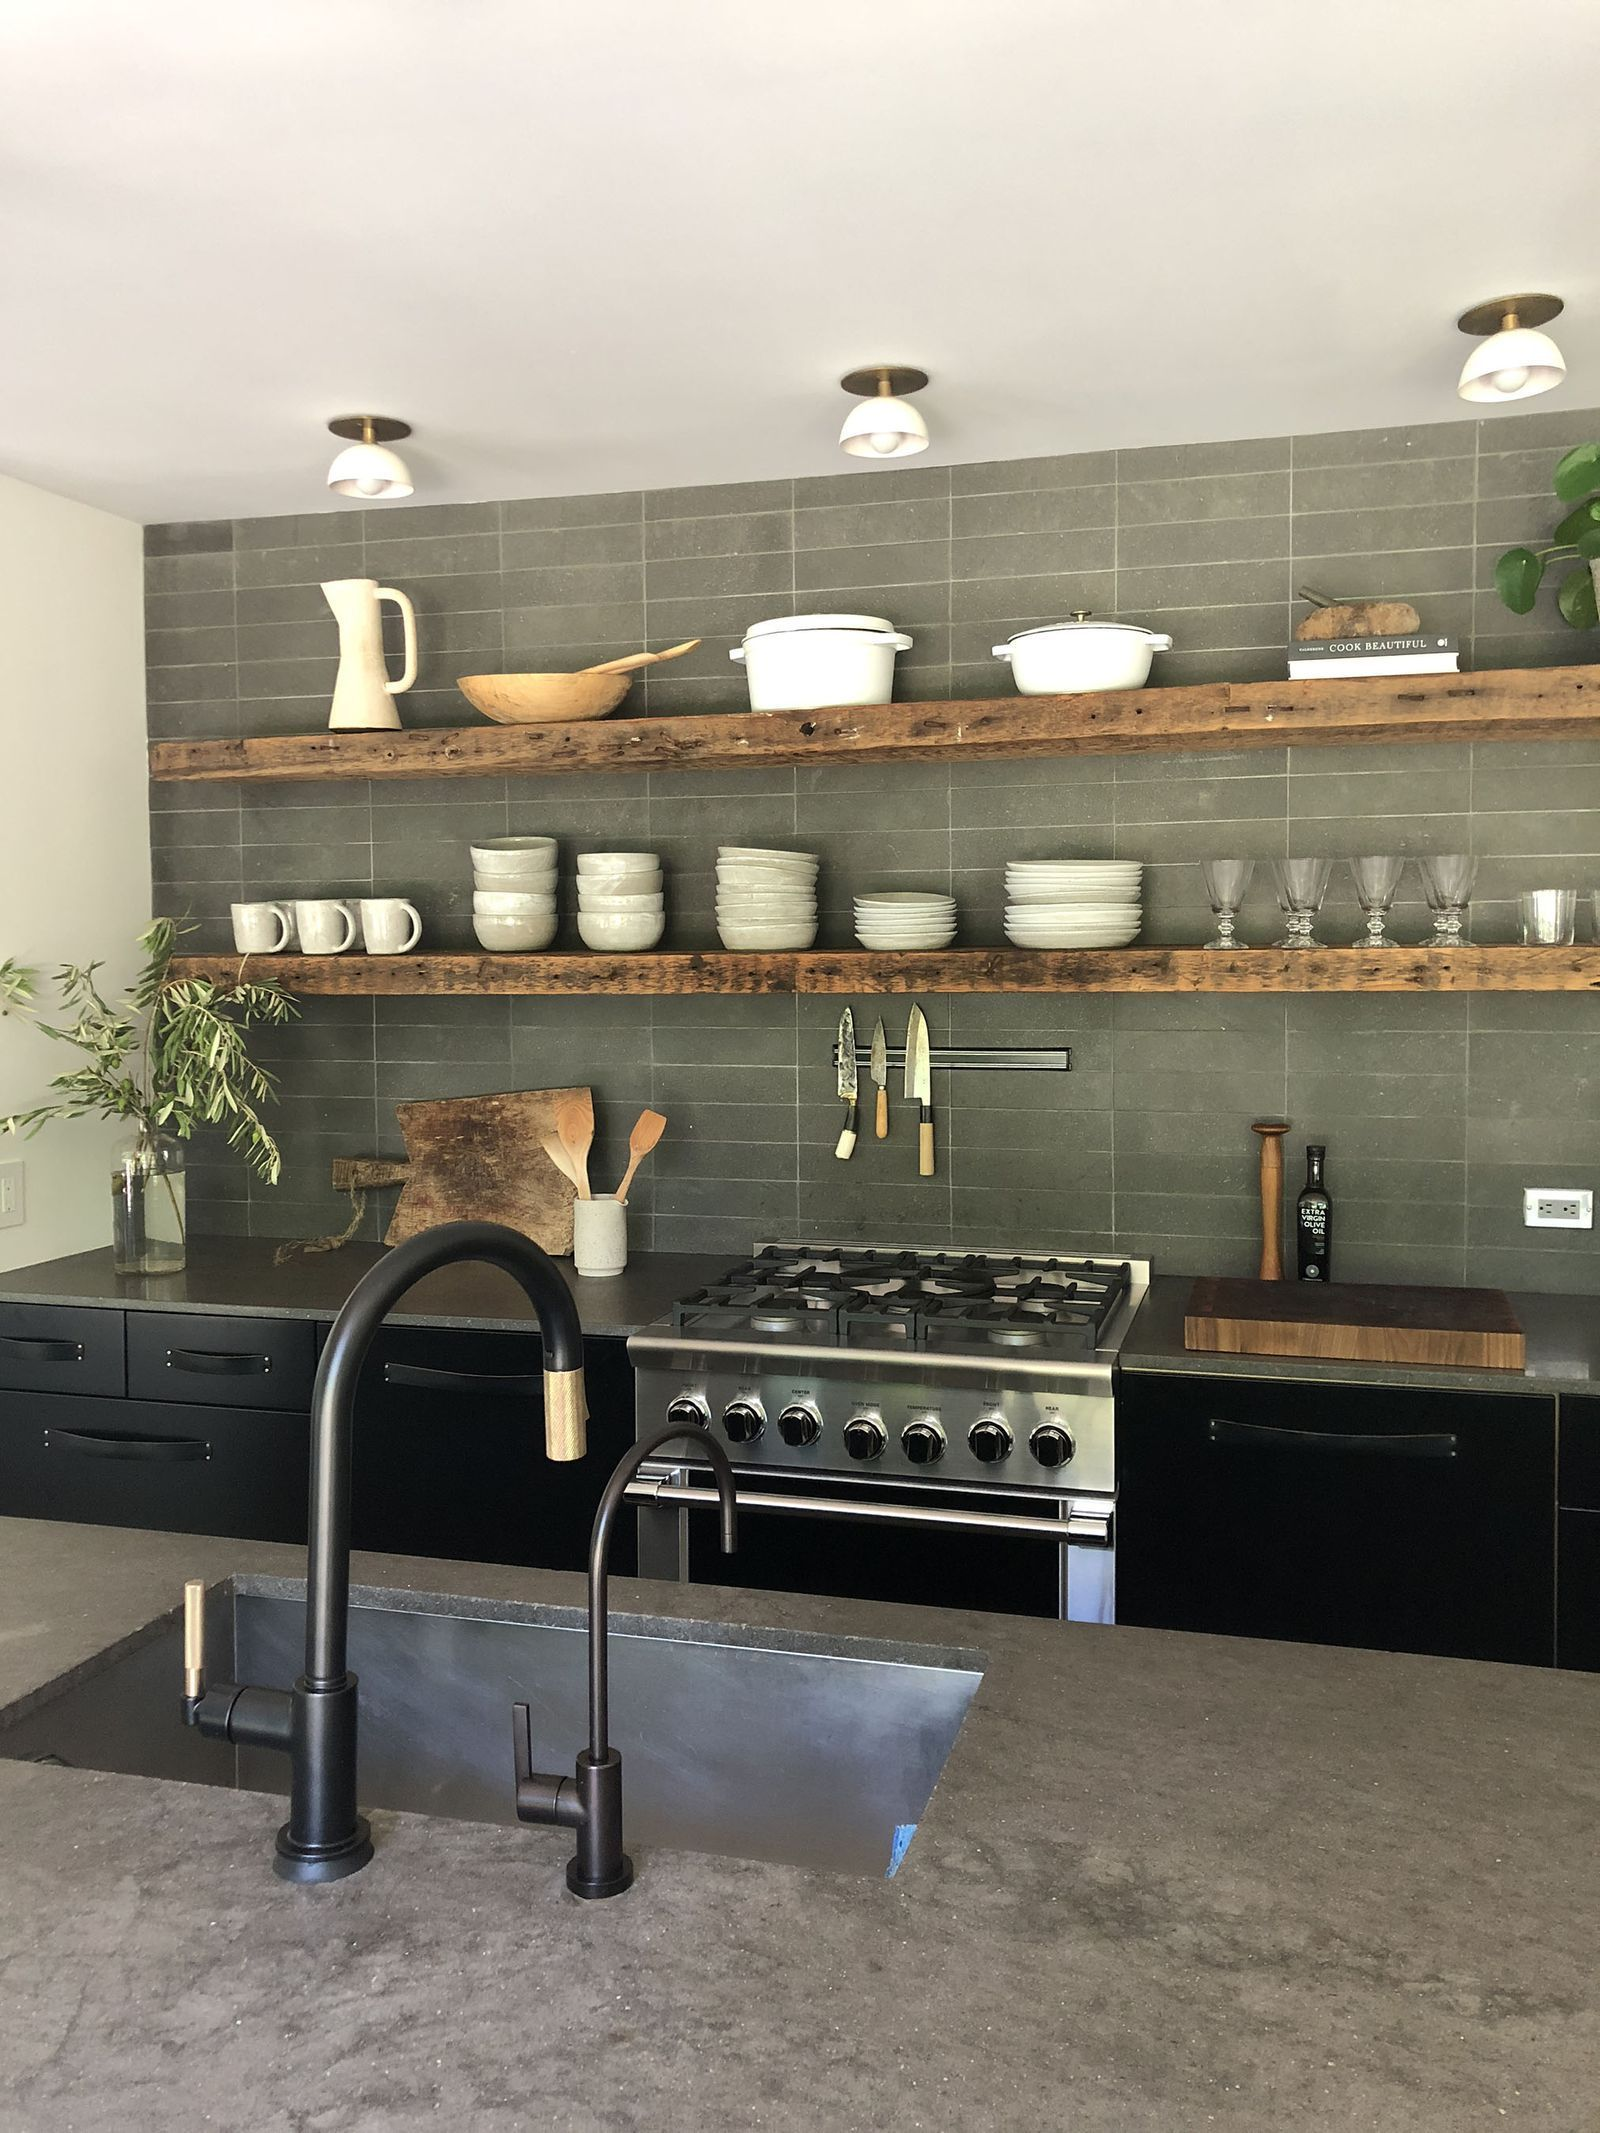 Streamlined kitchen in hues of earth tones